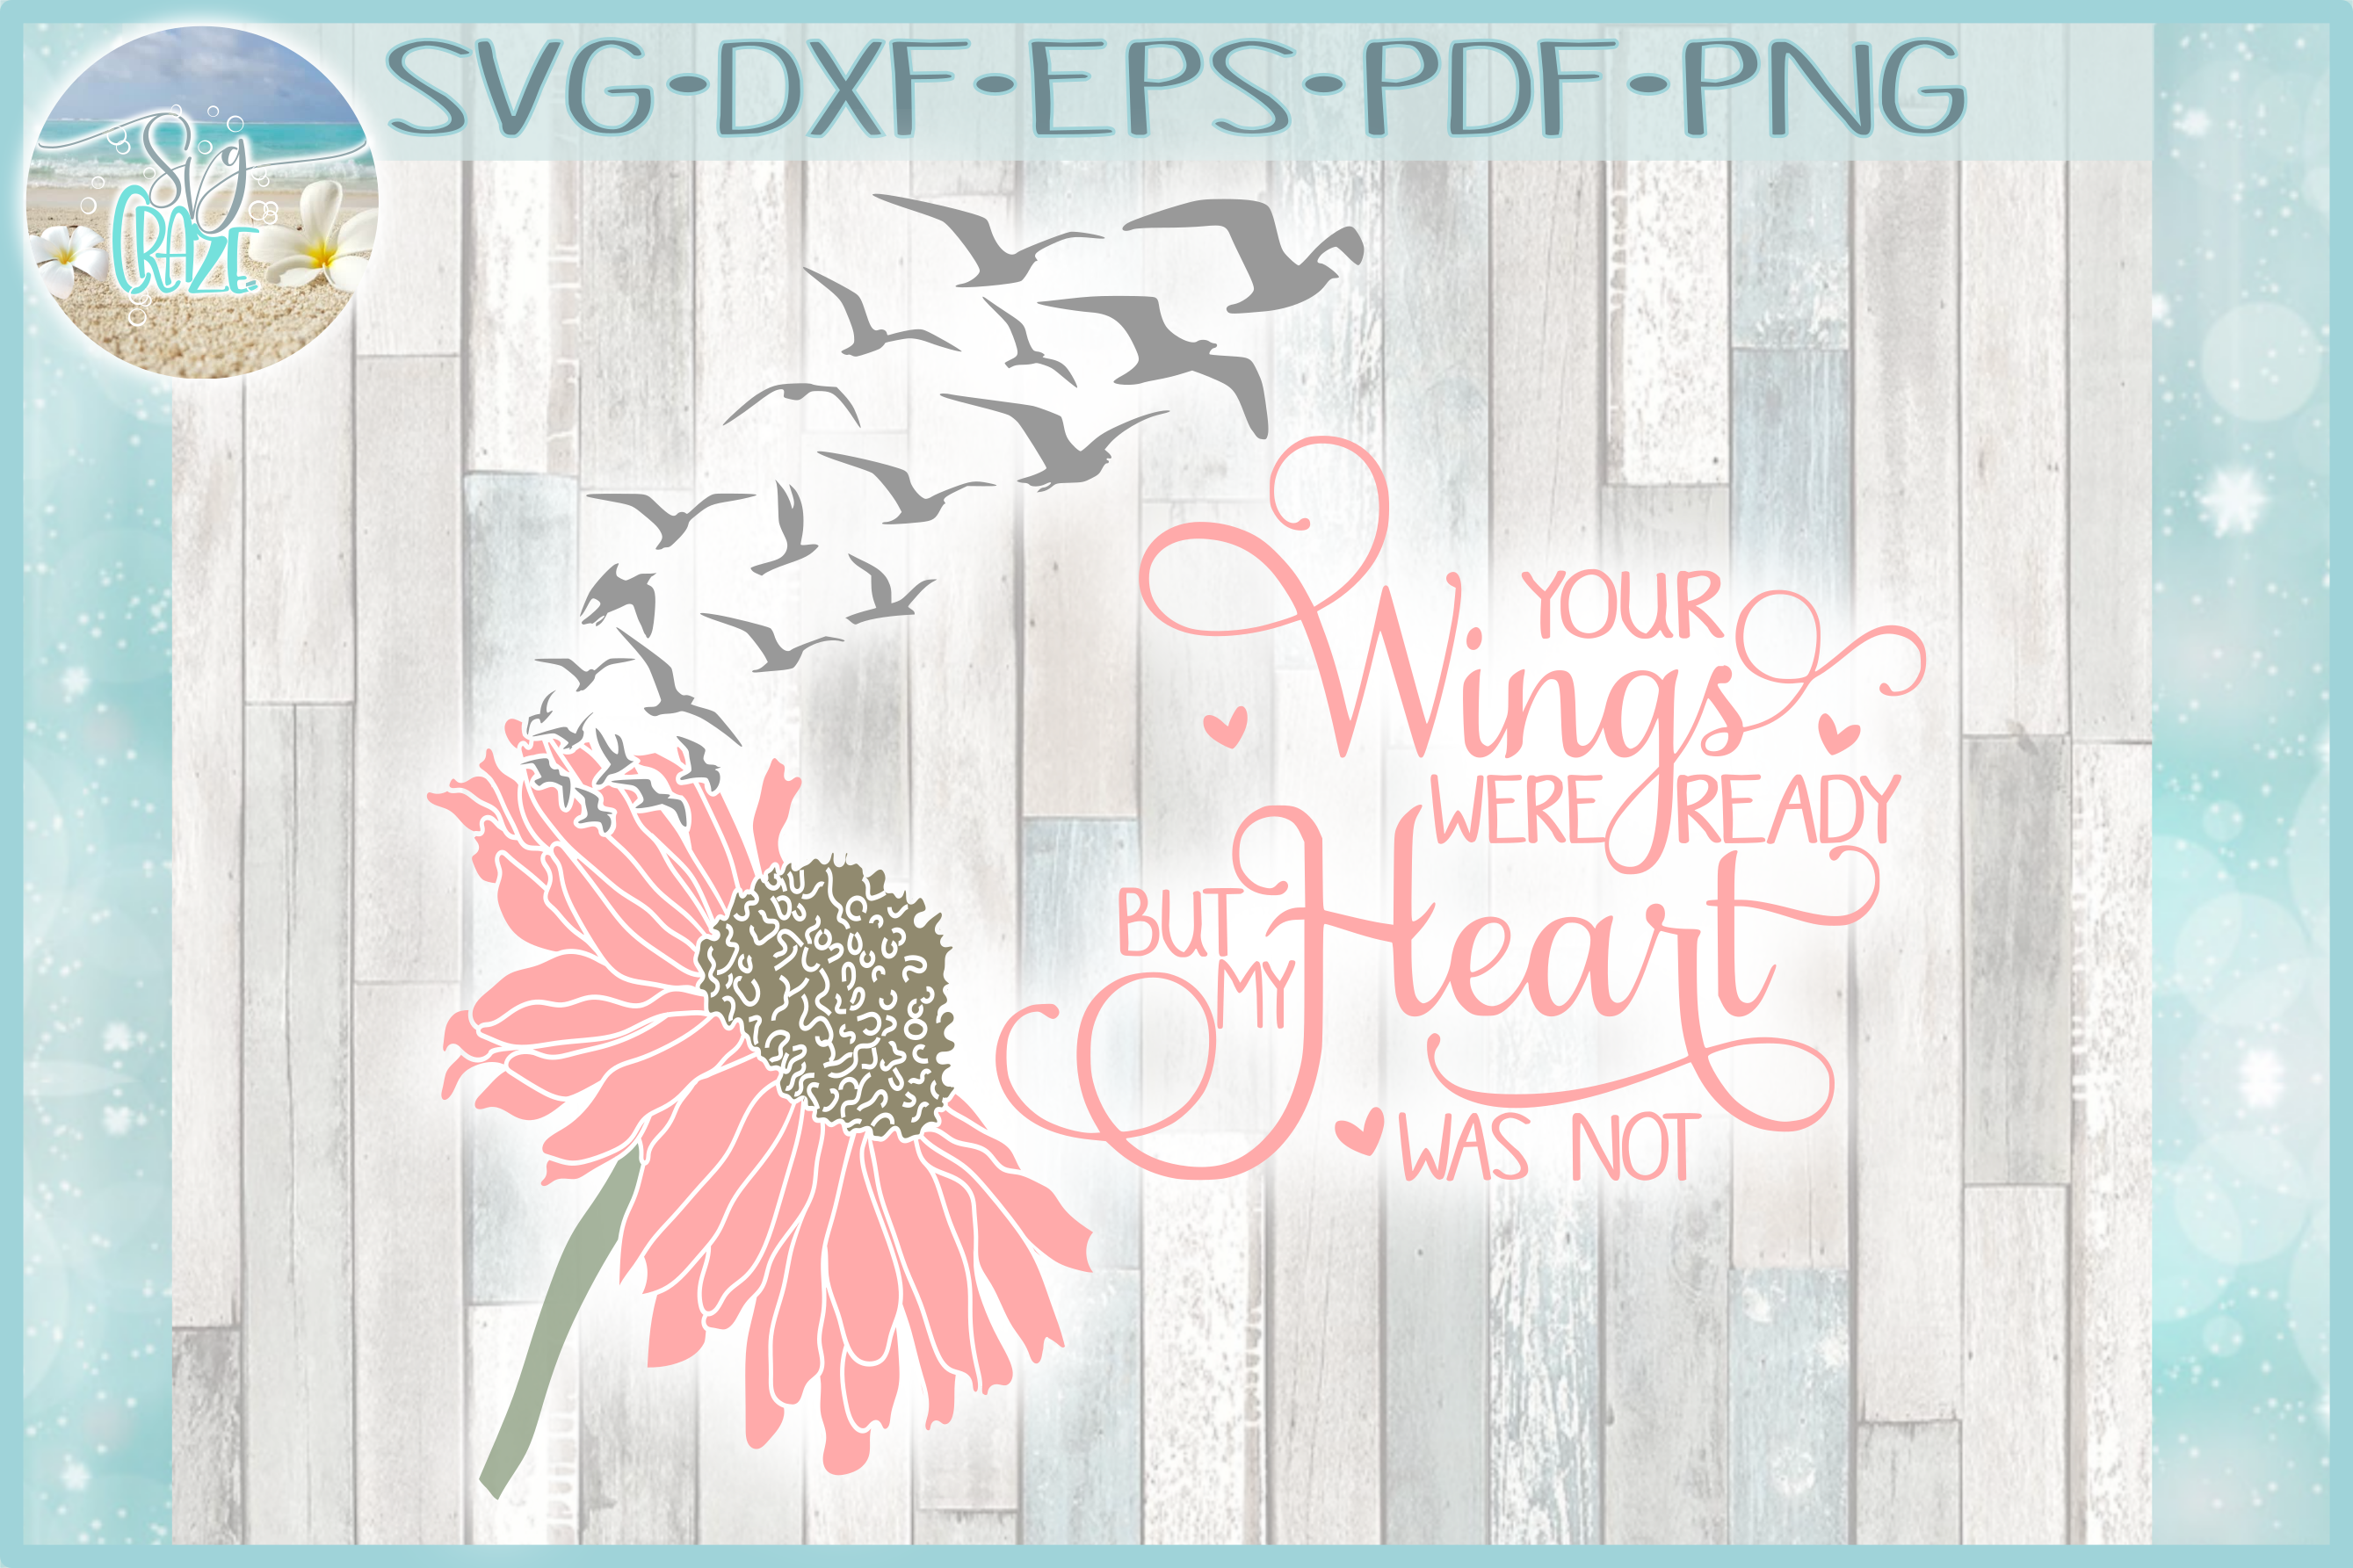 Your Wings Were Ready But My Heart Was Not with Daisy SVG example image 1